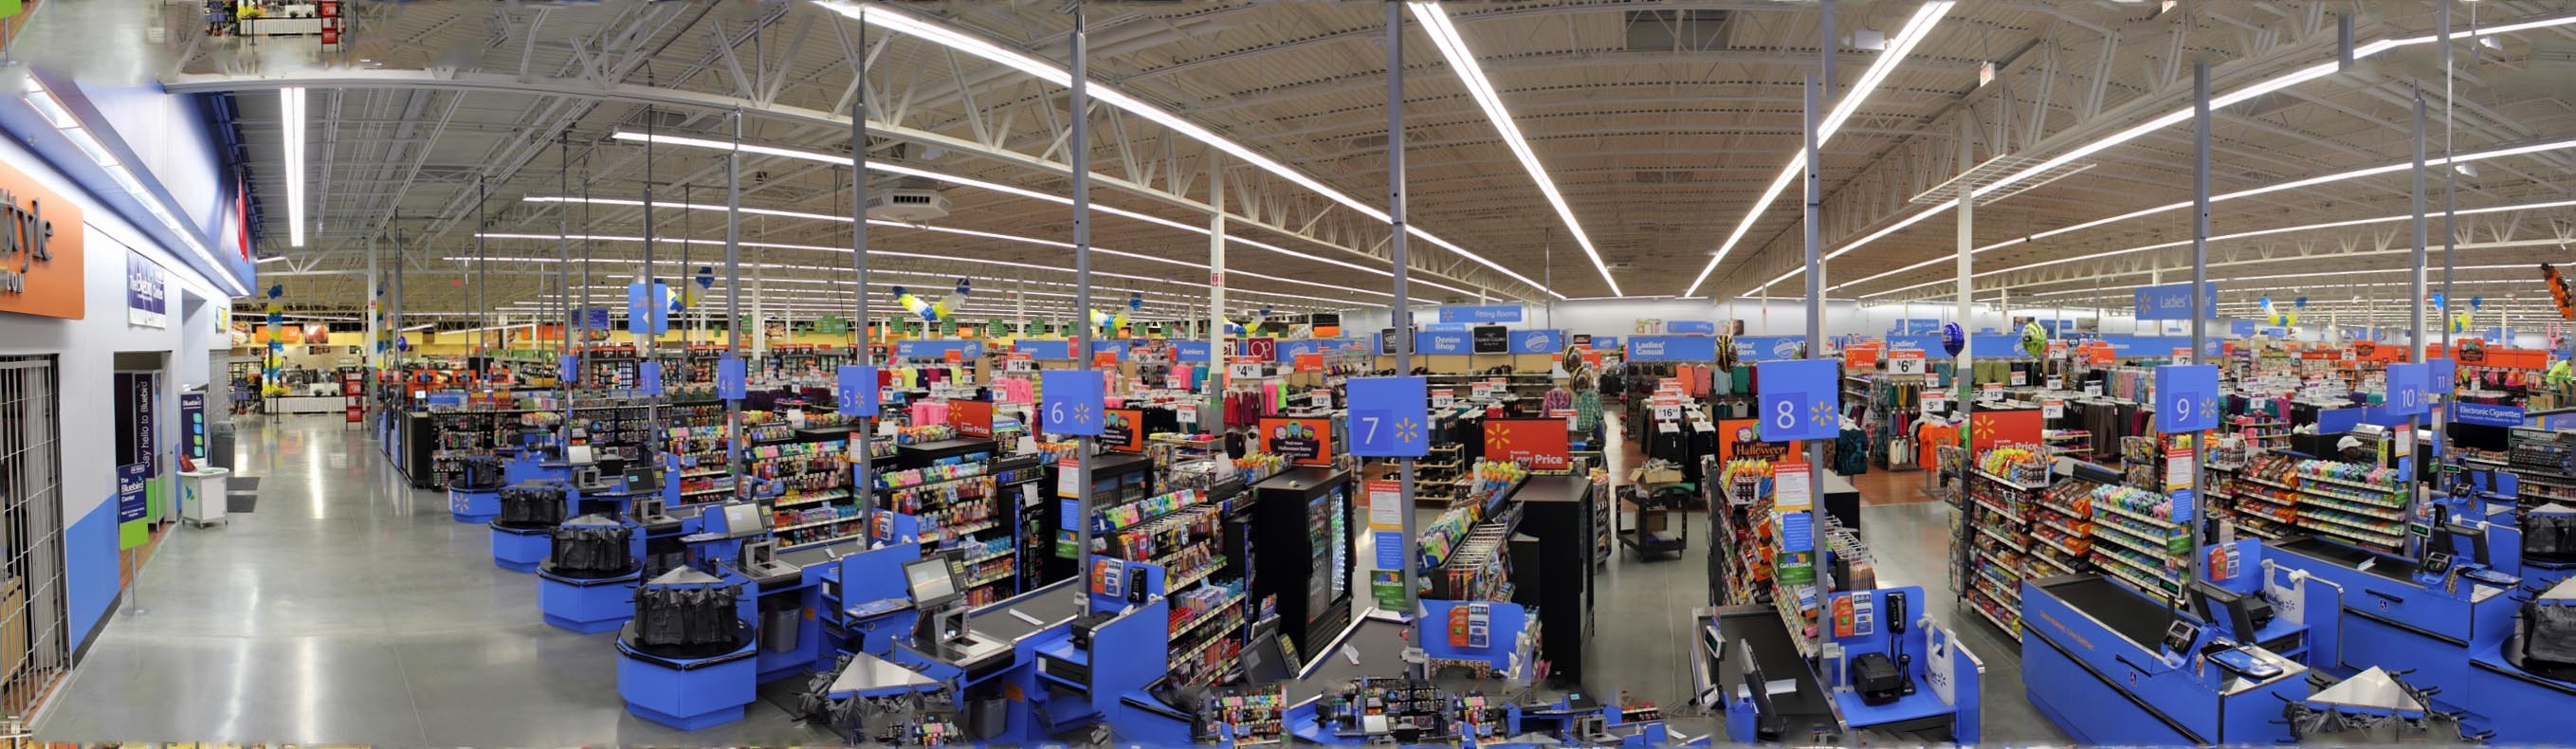 Walmart Continues Retail Energy Efficiency Leadership with